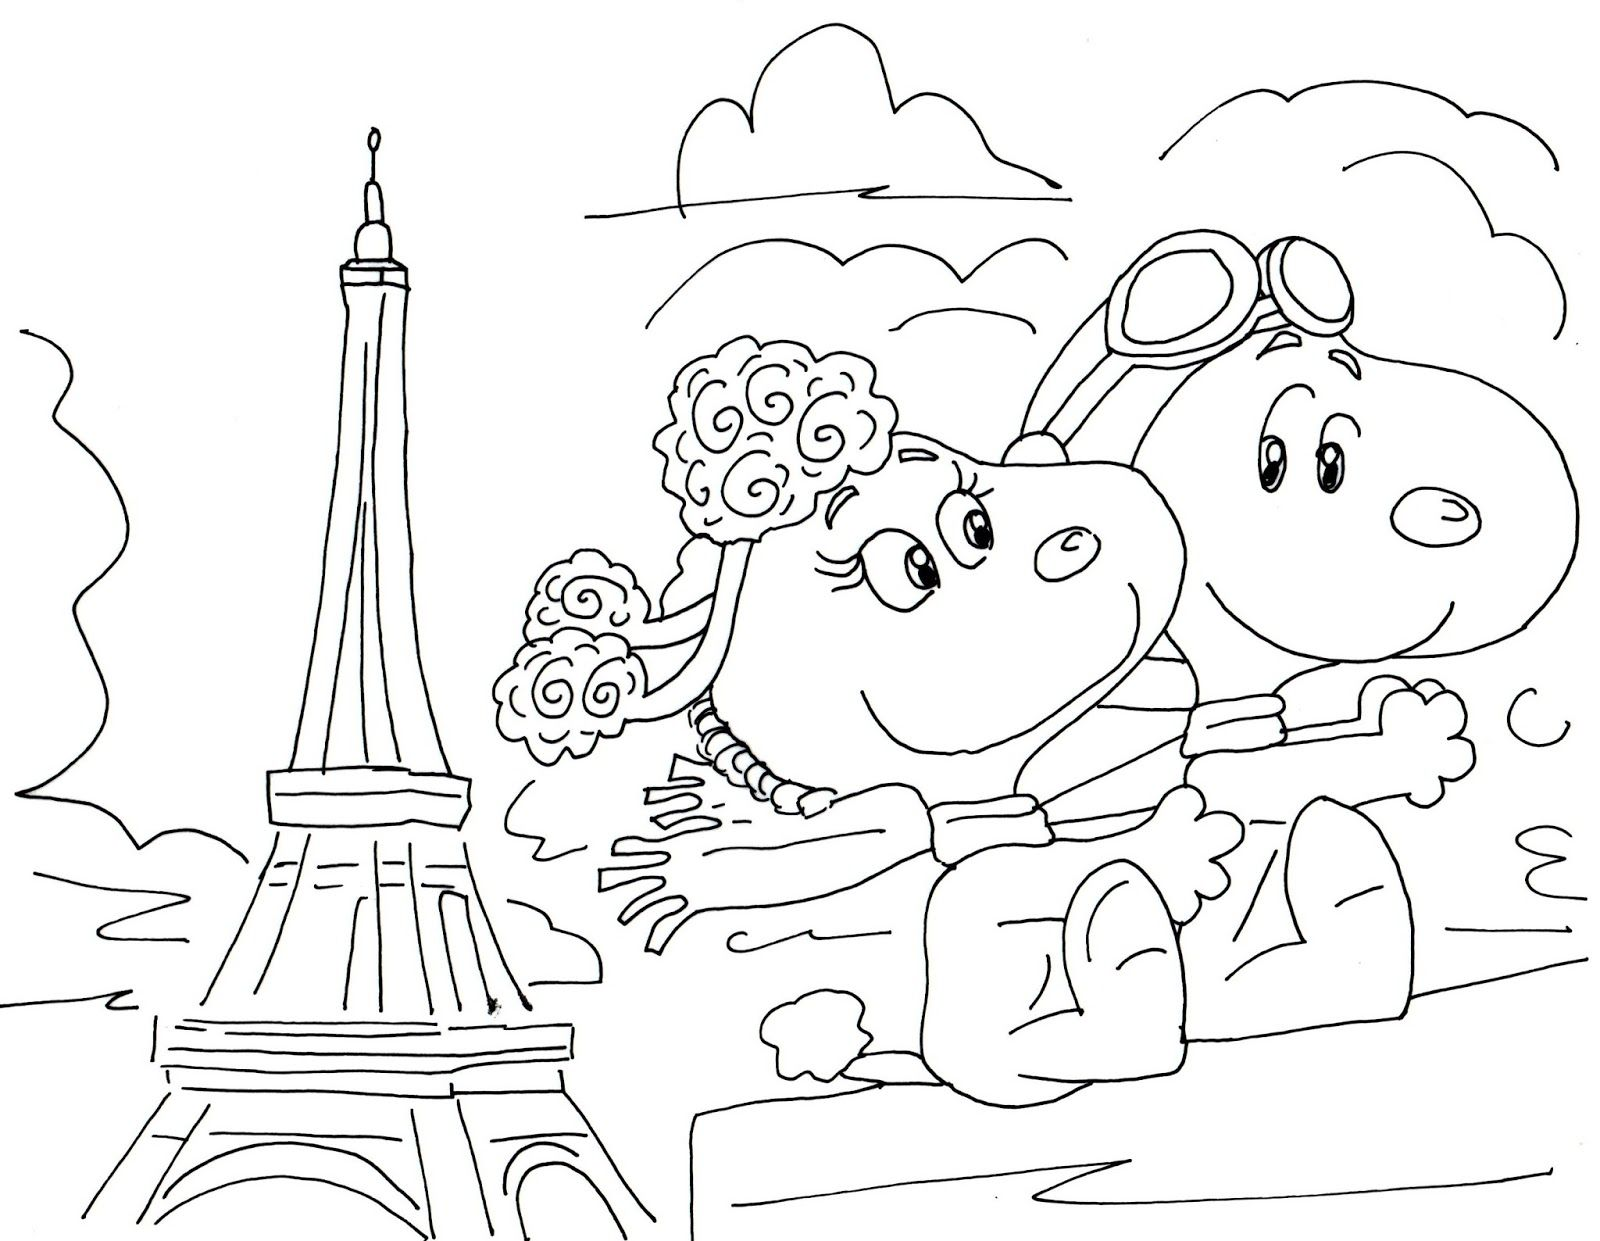 Free Charlie Brown Snoopy And Peanuts Coloring Pages Fifi